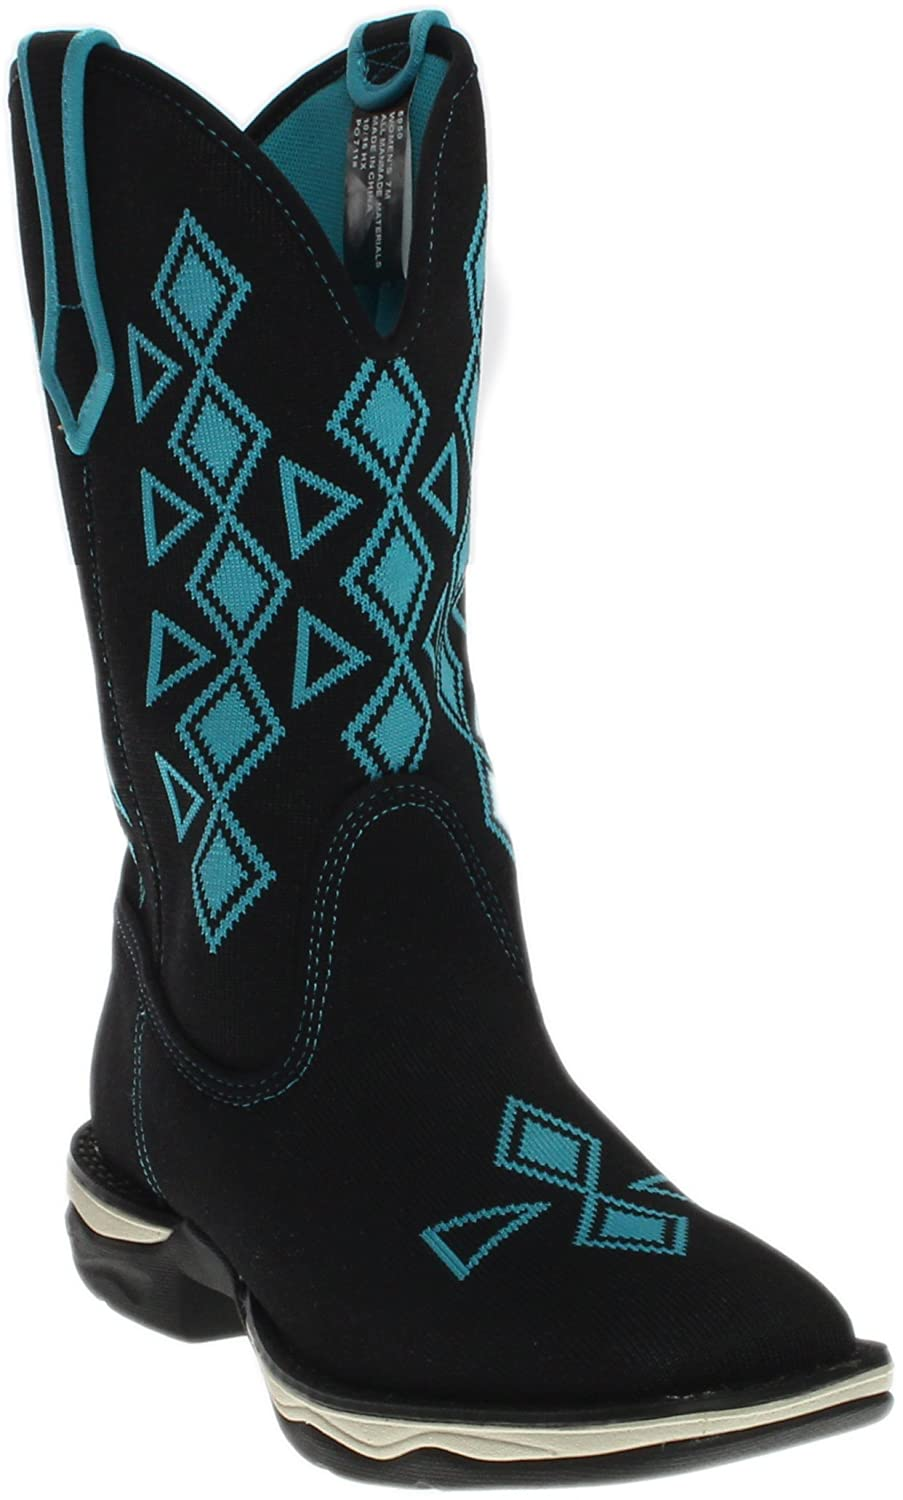 Laredo Women's Venturer Performair Woven Western Boot Square Toe - 5950 B01LX6ACXW 9 B(M) US|Black